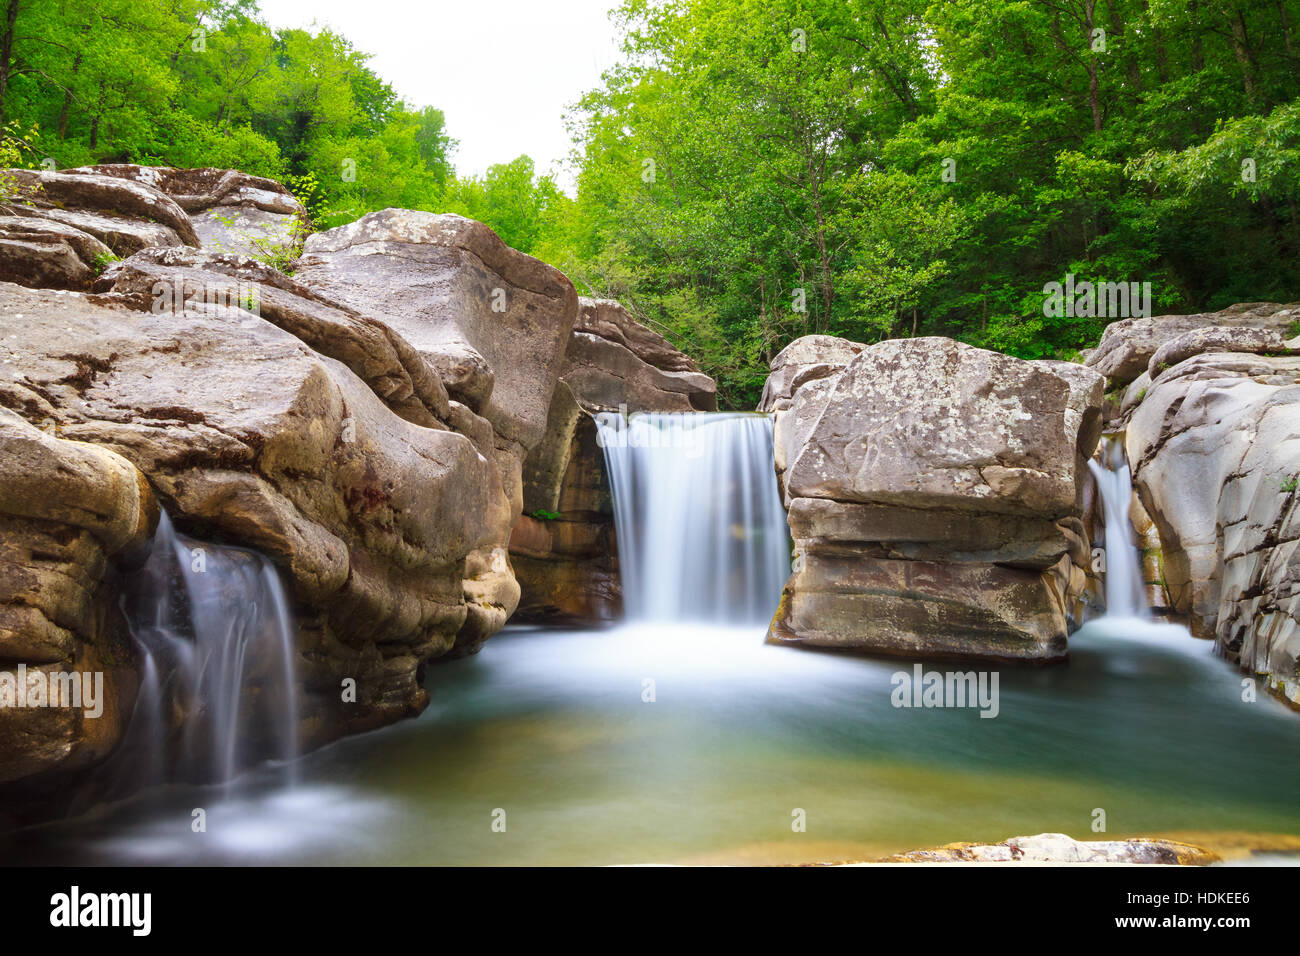 waterfall landscape with rocks and trees - Stock Image